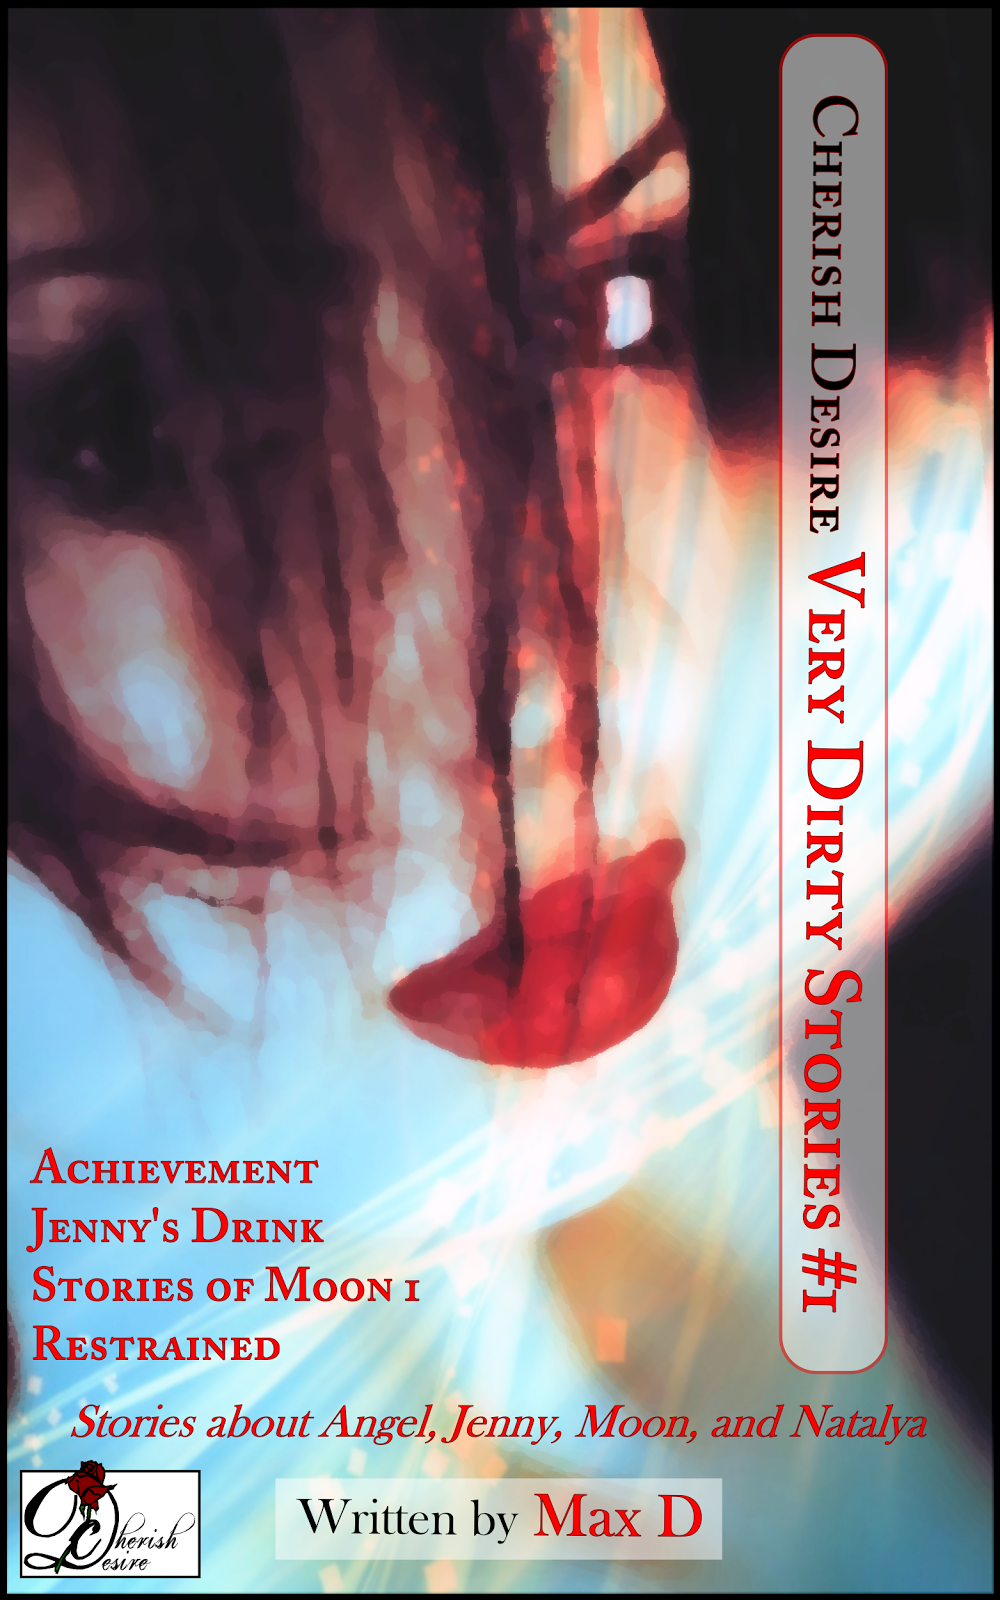 Very Dirty Stories #1, Max D, erotica